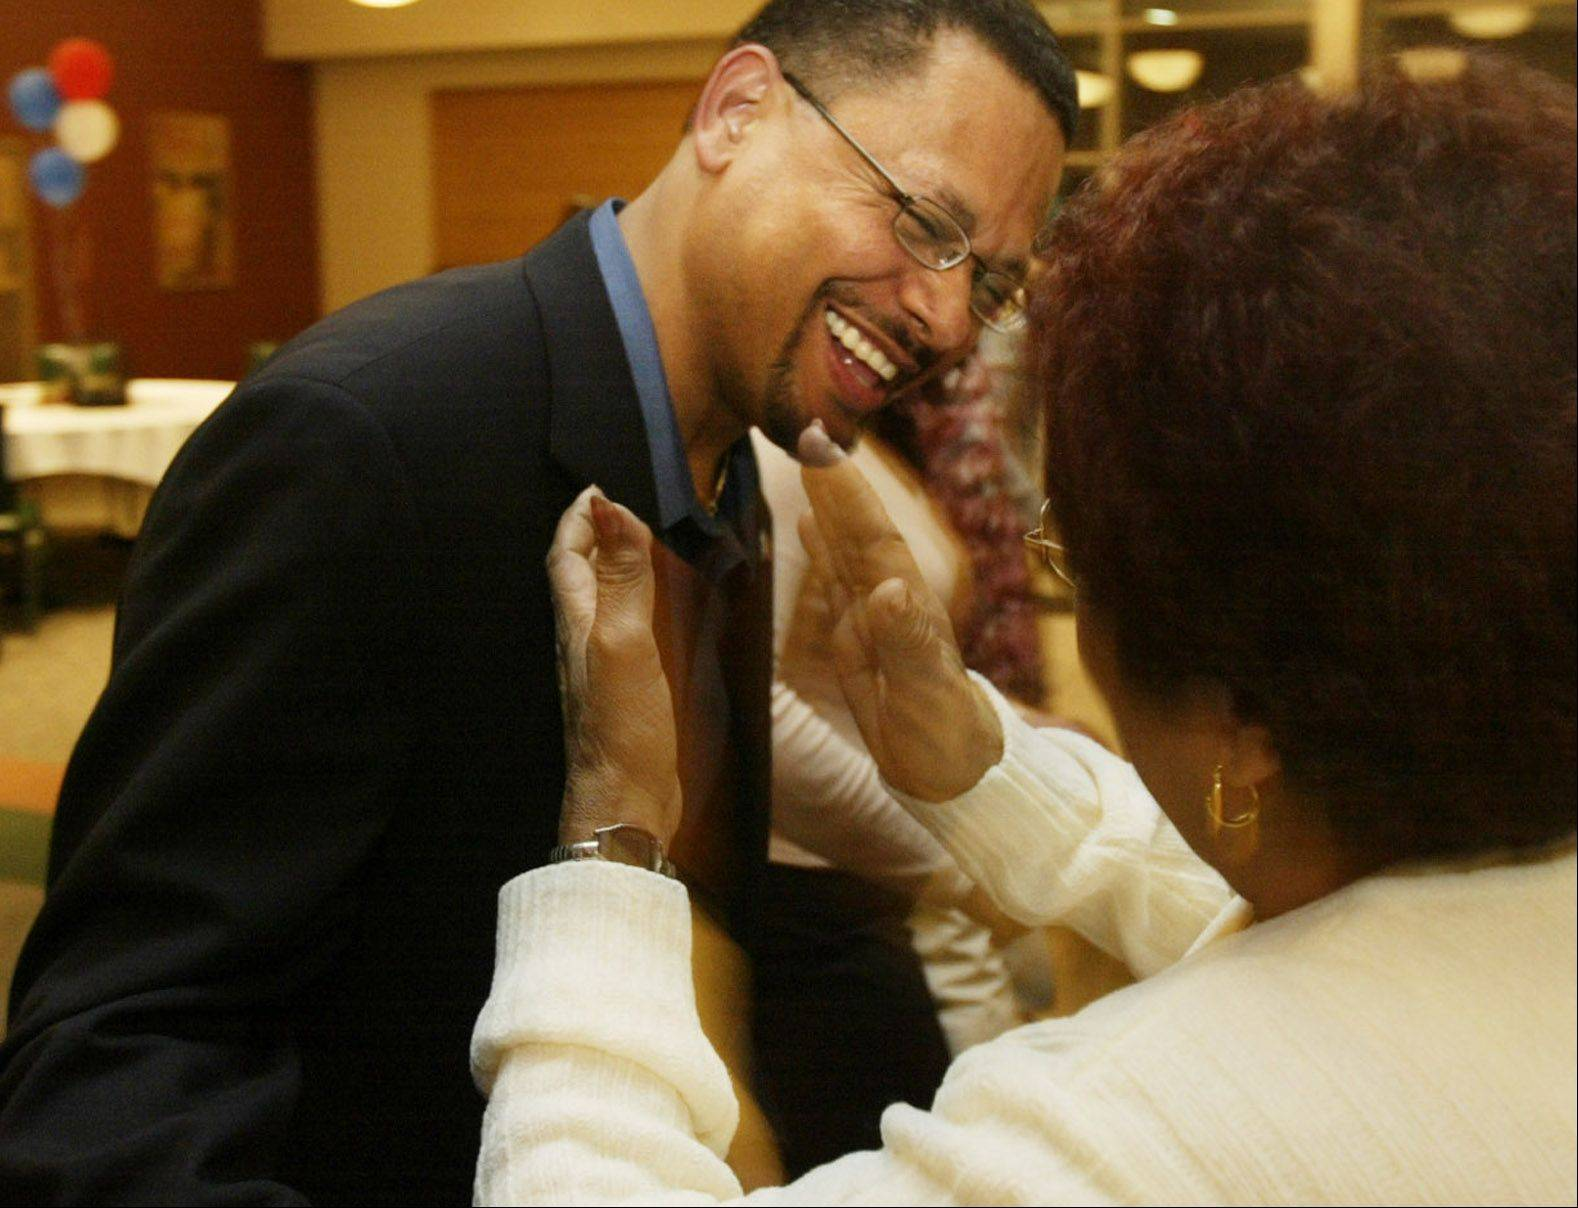 Then-Elgin councilman Juan Figueroa dances with his mother-in-law, Ada Soto of Puerto Rico, during an election night party in 2005. Figueroa was the top vote-getter in that election, but he lost his council bid in 2009. There currently are no Latinos serving on the Elgin City Council, and none filed to run for five open seats in 2013.